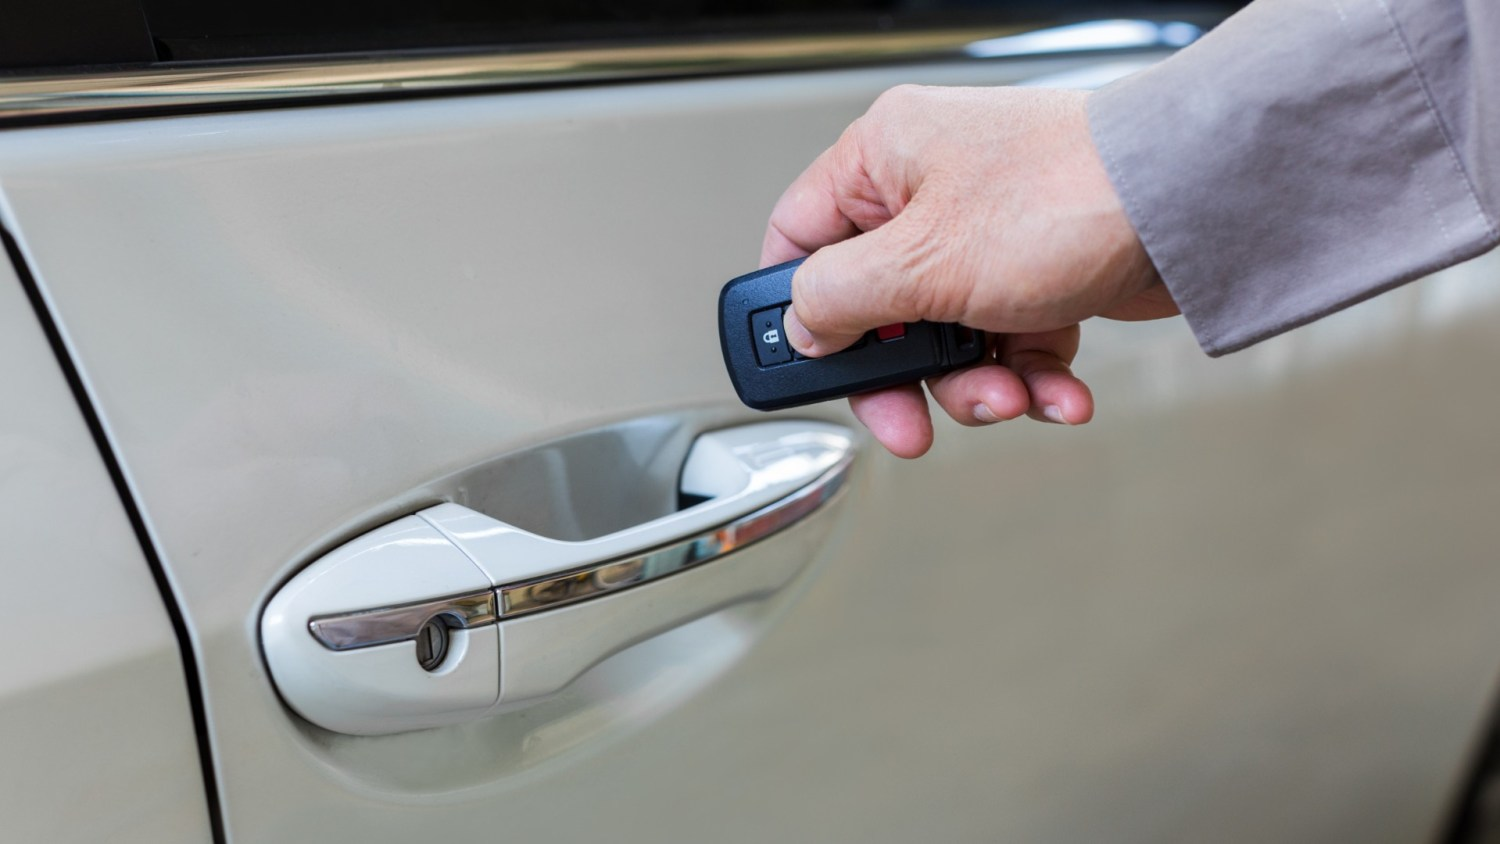 car theft claims at seven year high